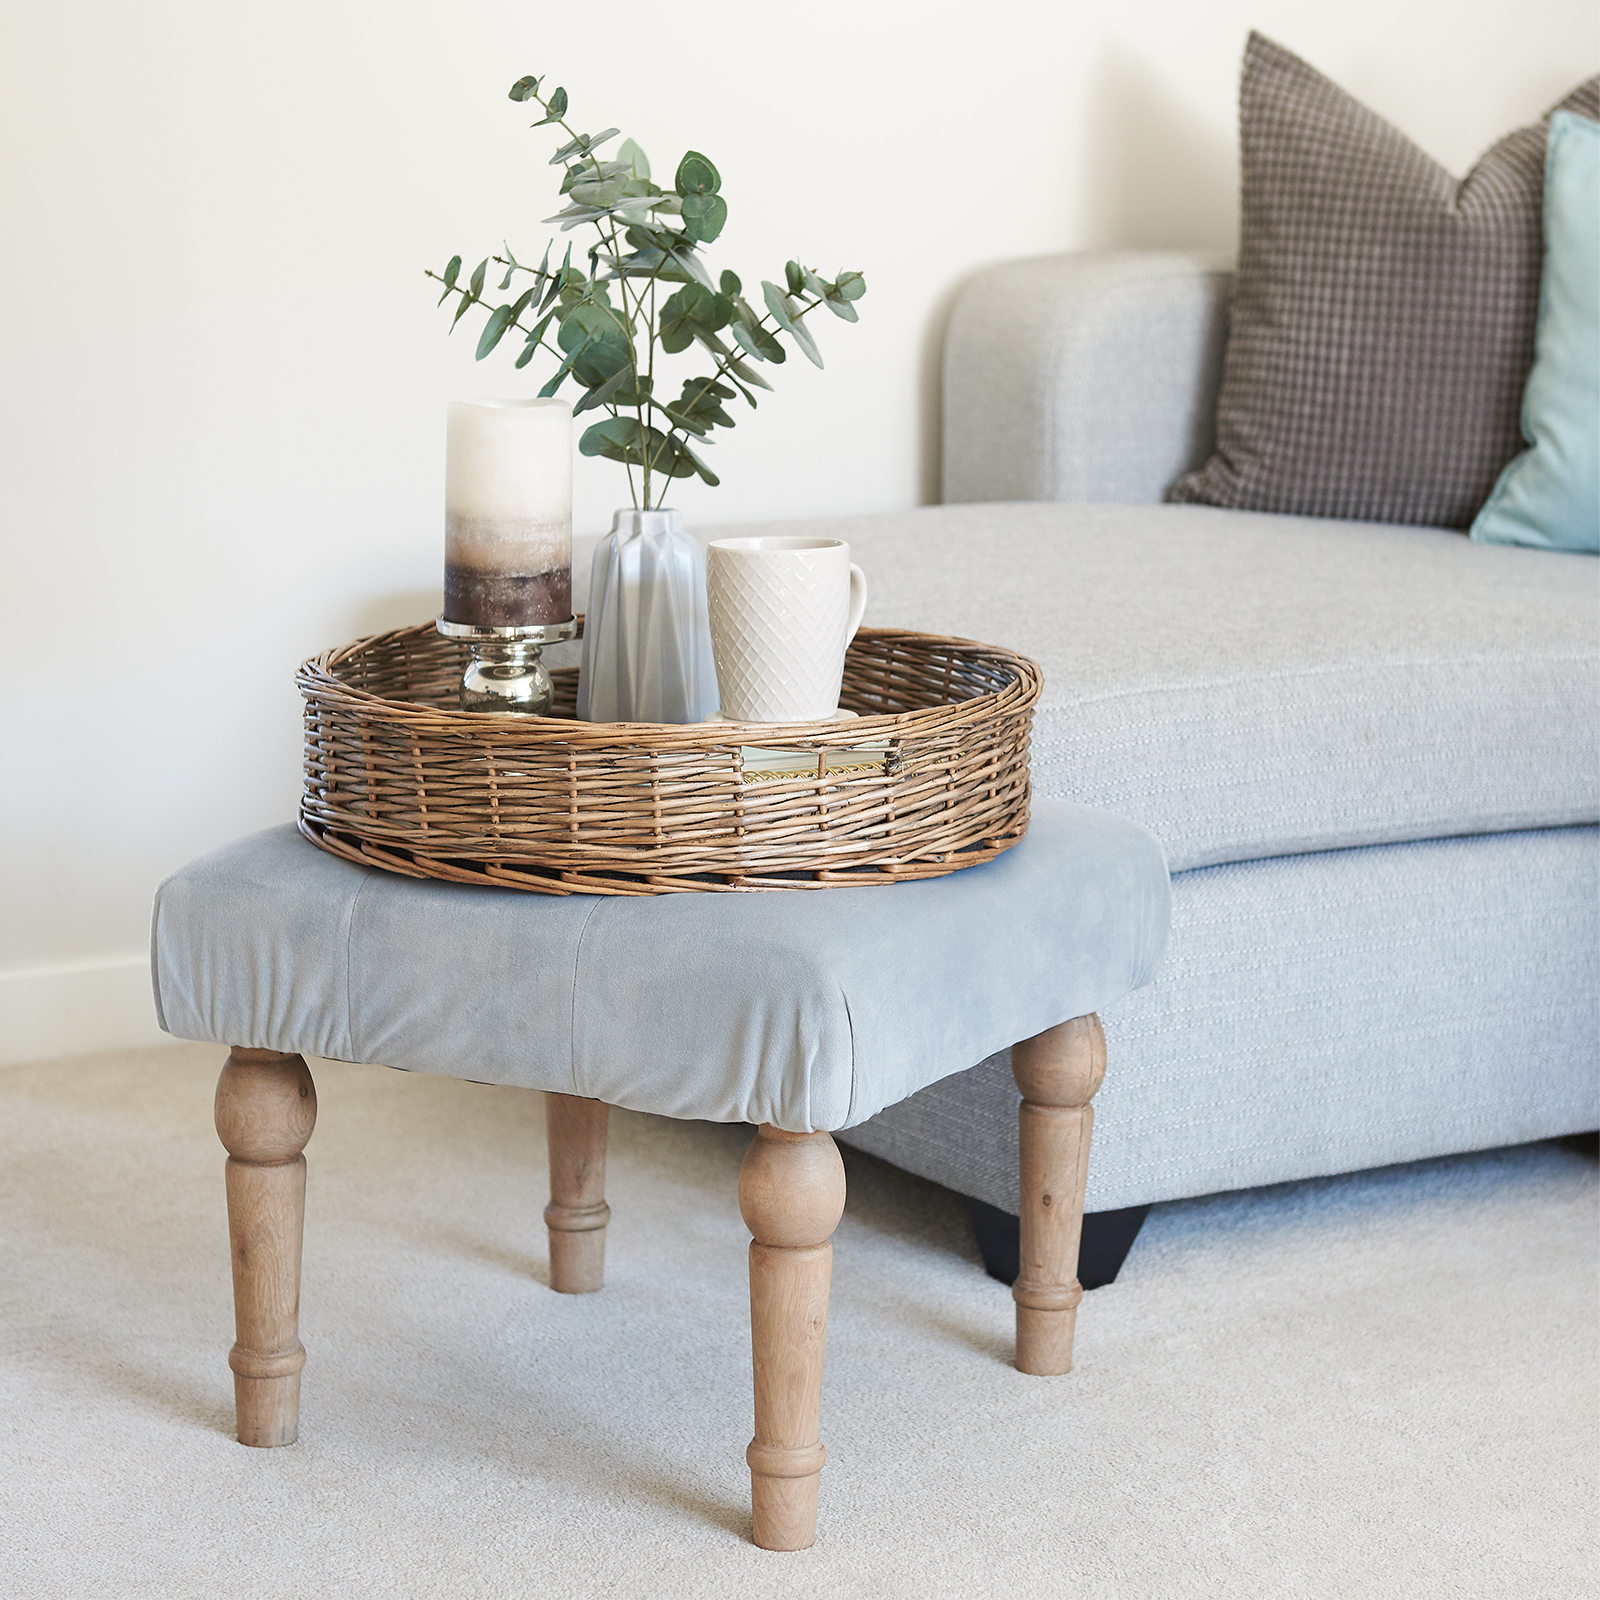 Hartleys-Round-Wicker-Serving-Tray-Decorative-Wooden-Platter-Coffee-Table-Decor thumbnail 18